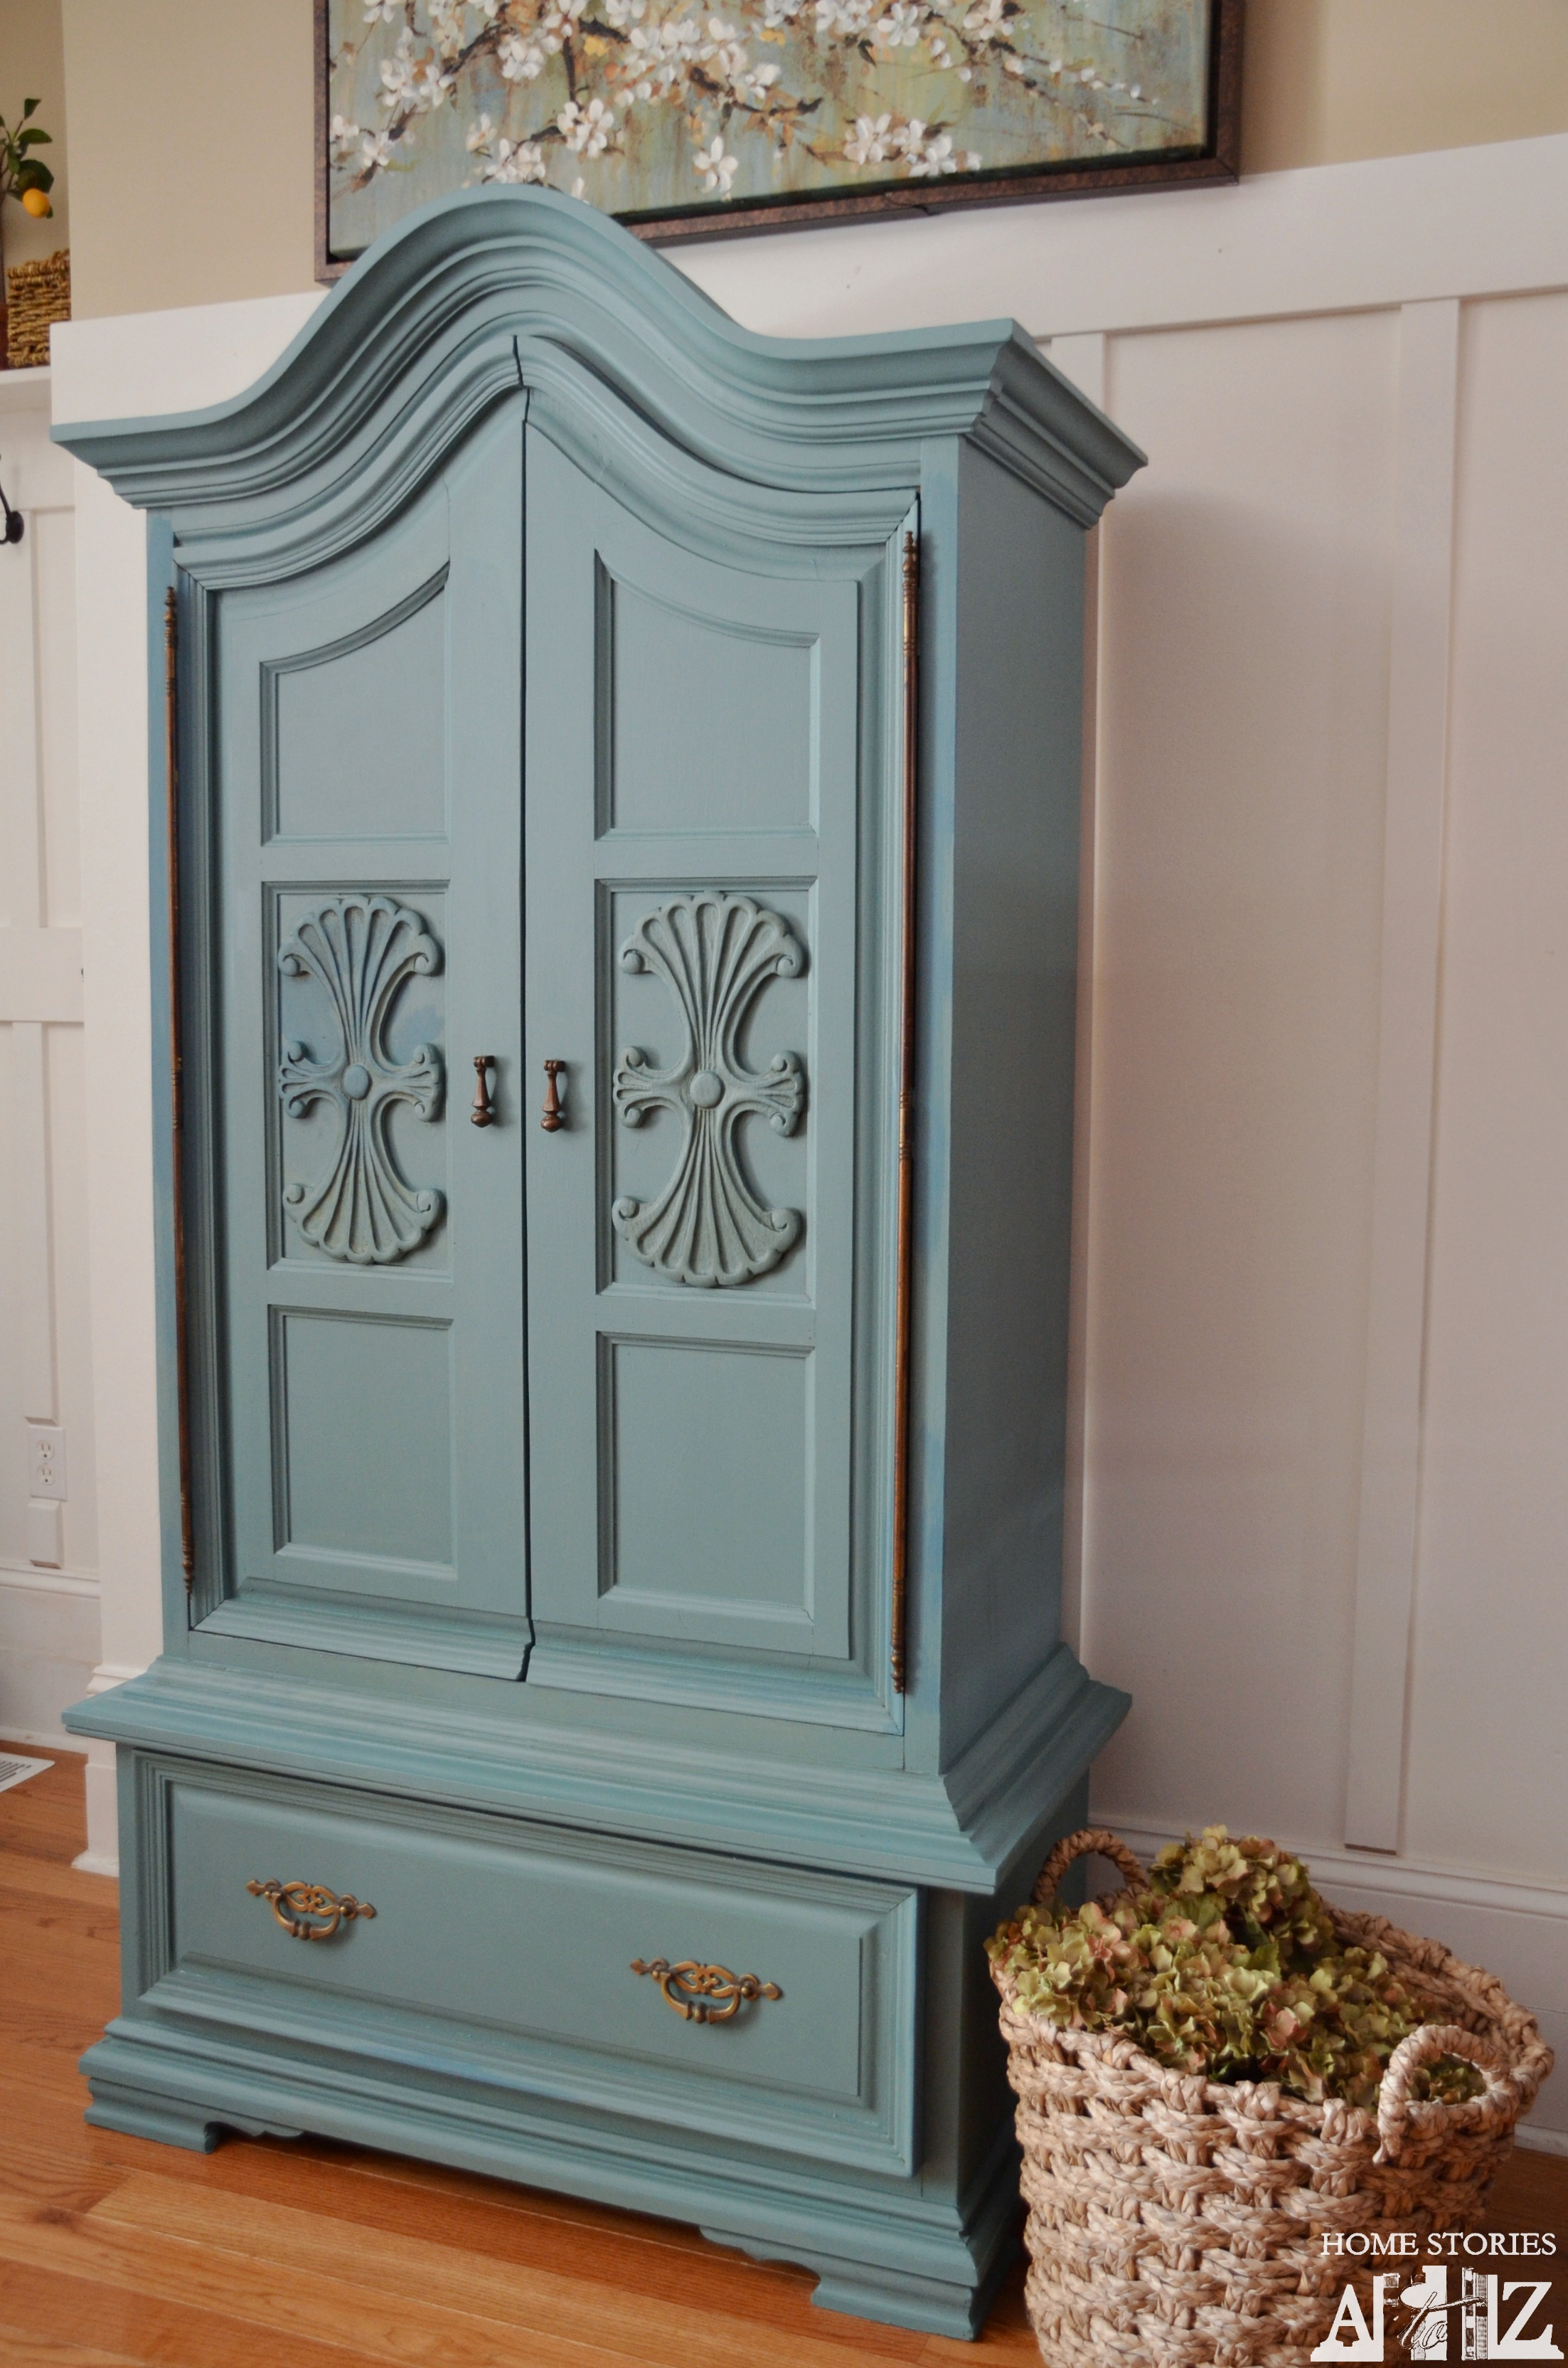 How to paint a vintage buffet home stories a to z - Painted Blue Armoire